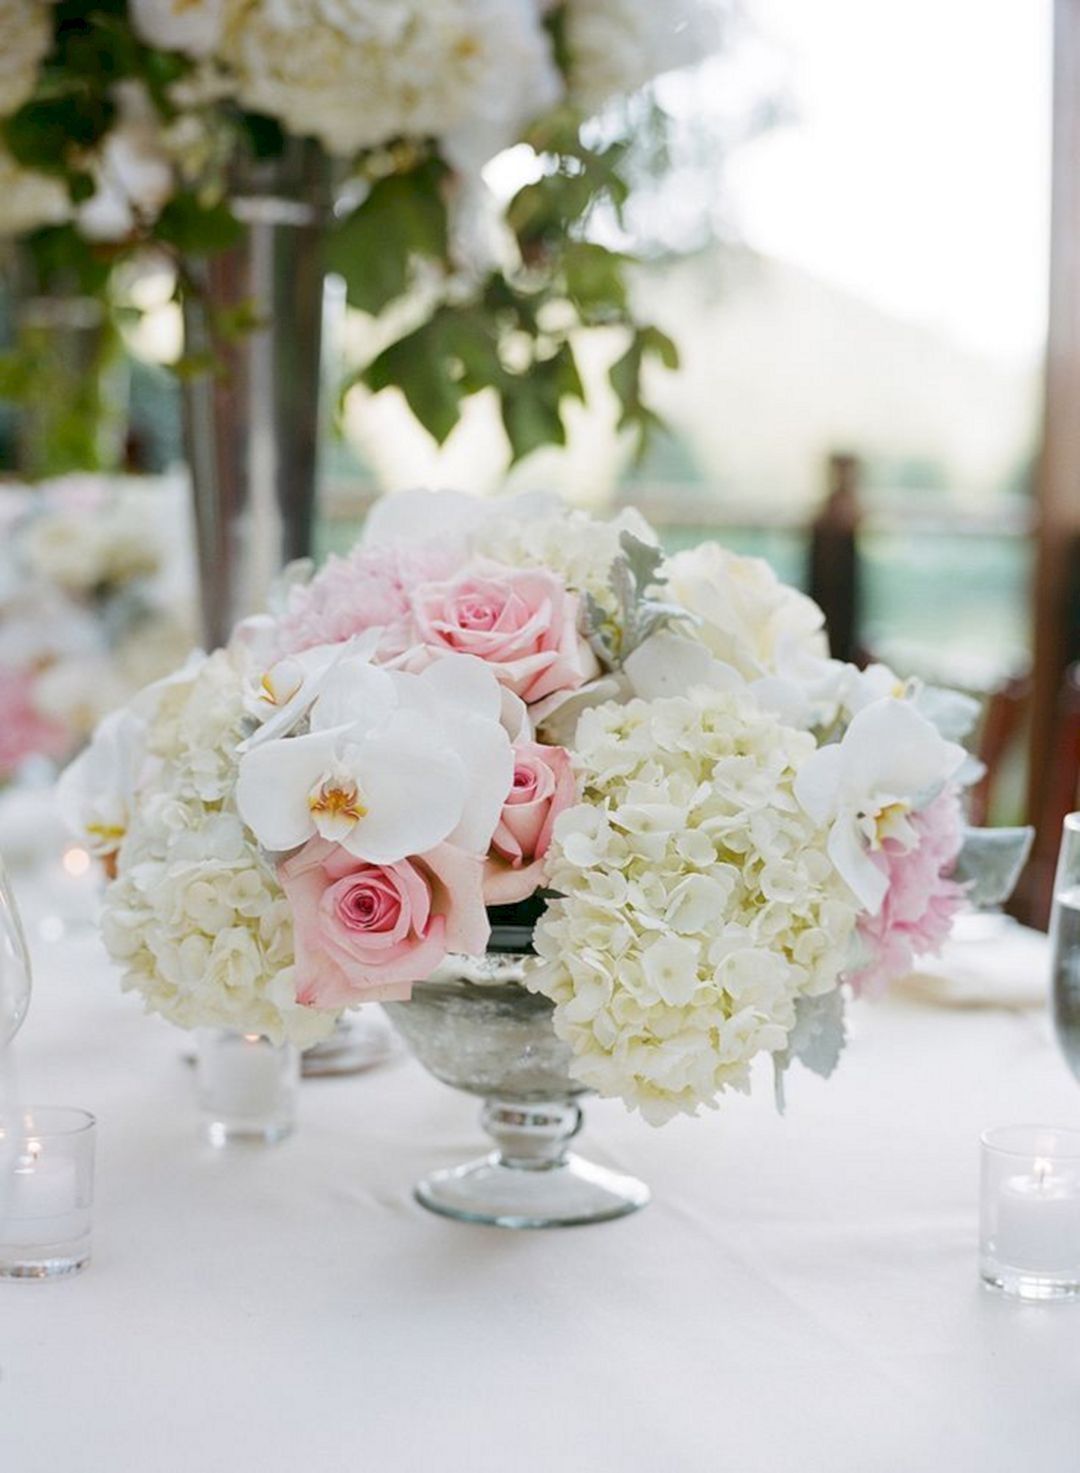 Red And Pink Flowers Centerpieces Idea For Wedding in February (30+ ...